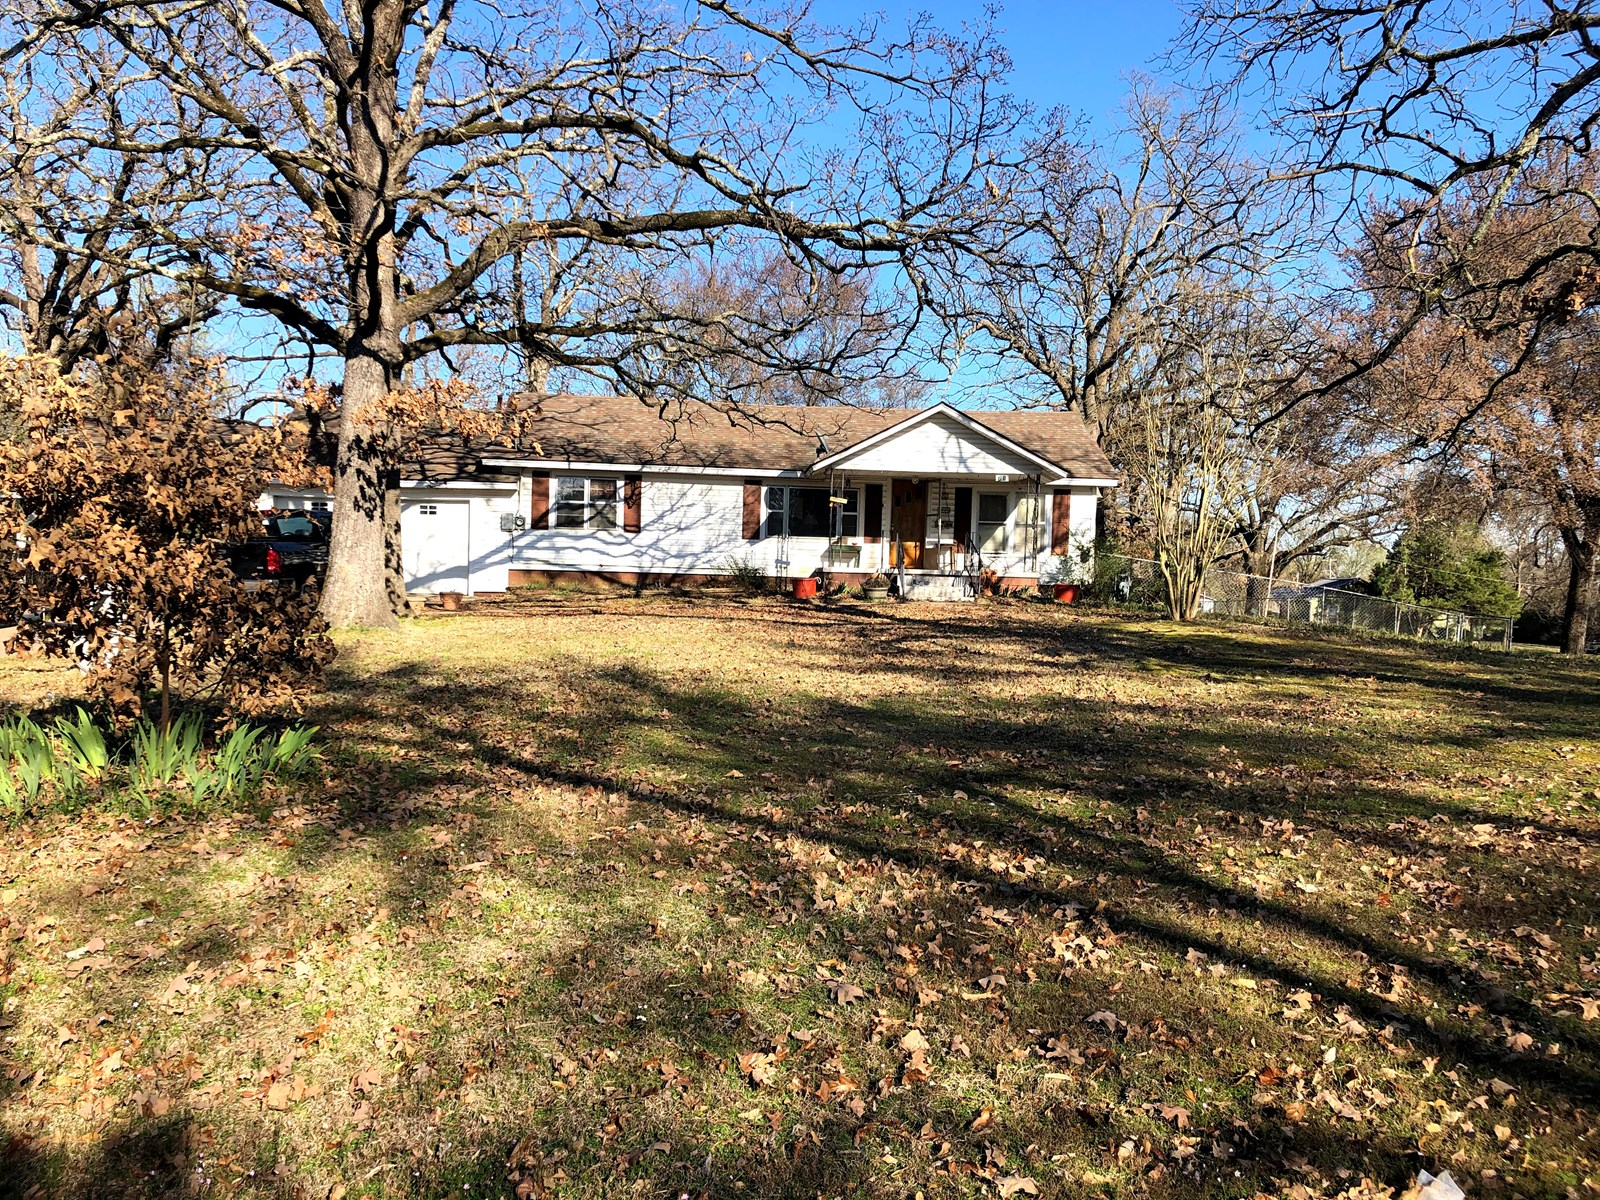 Muldrow home For sale on three lots